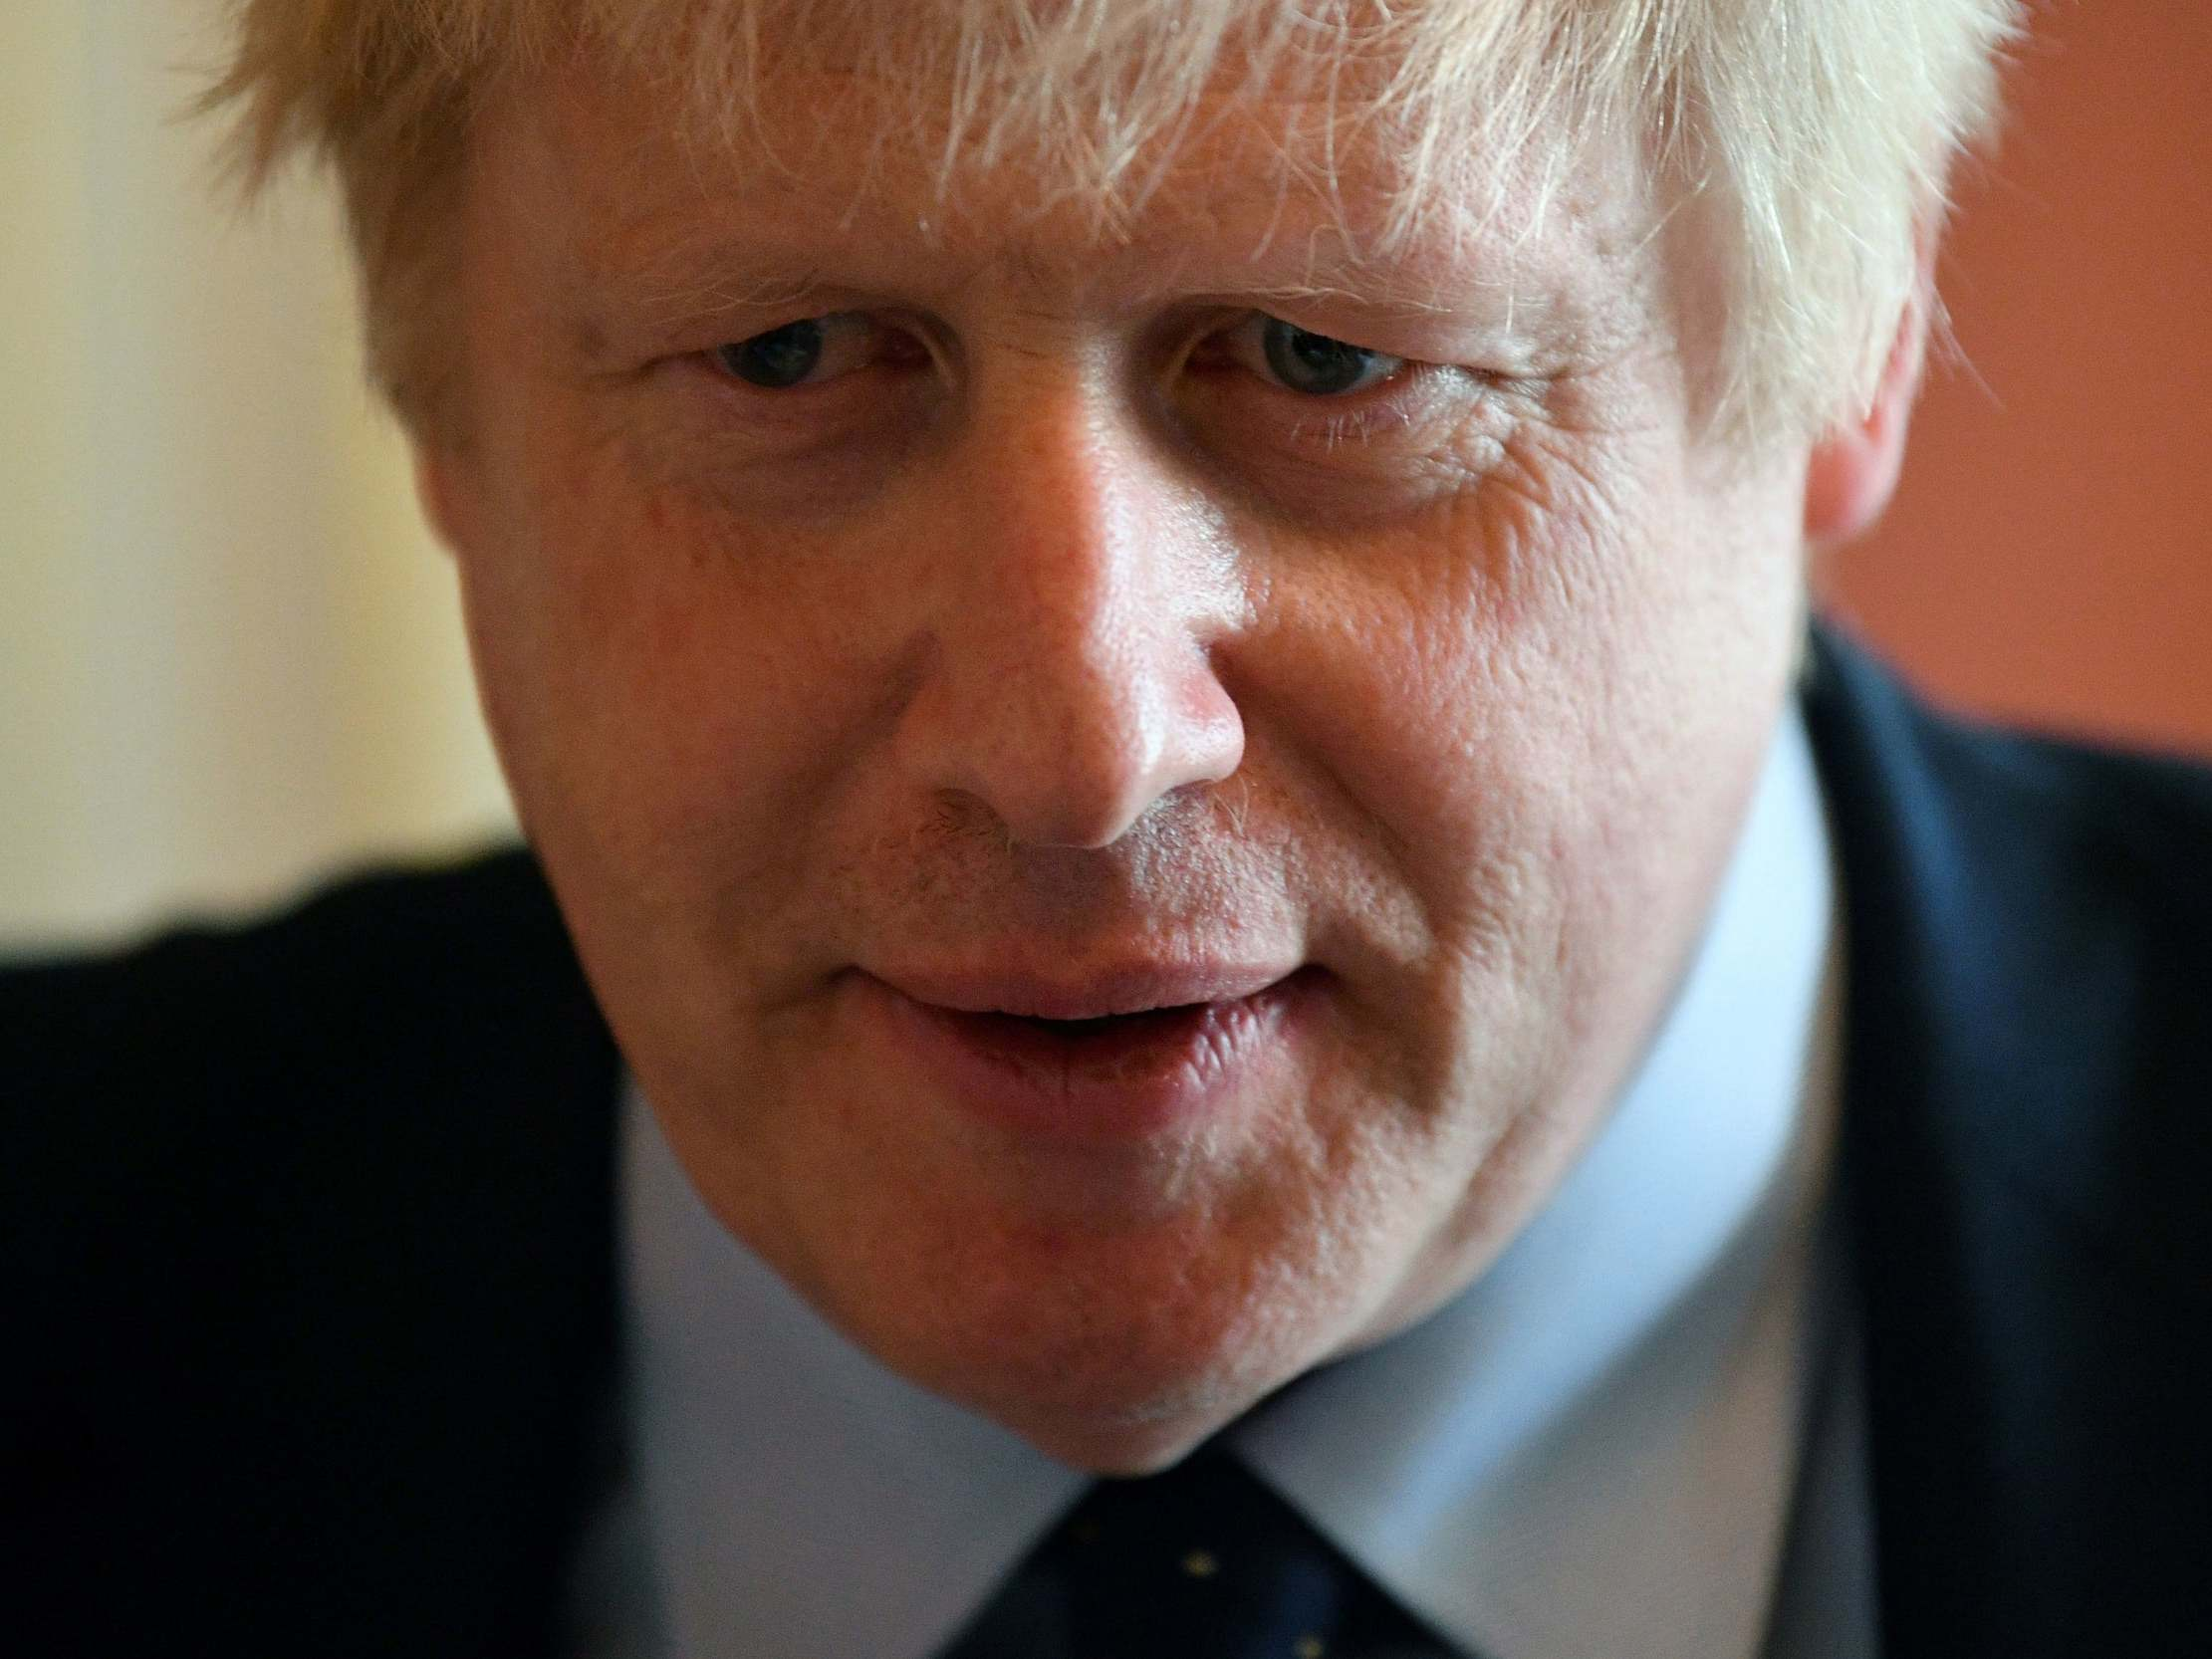 Boris Johnson's only way out of this crisis is to resign